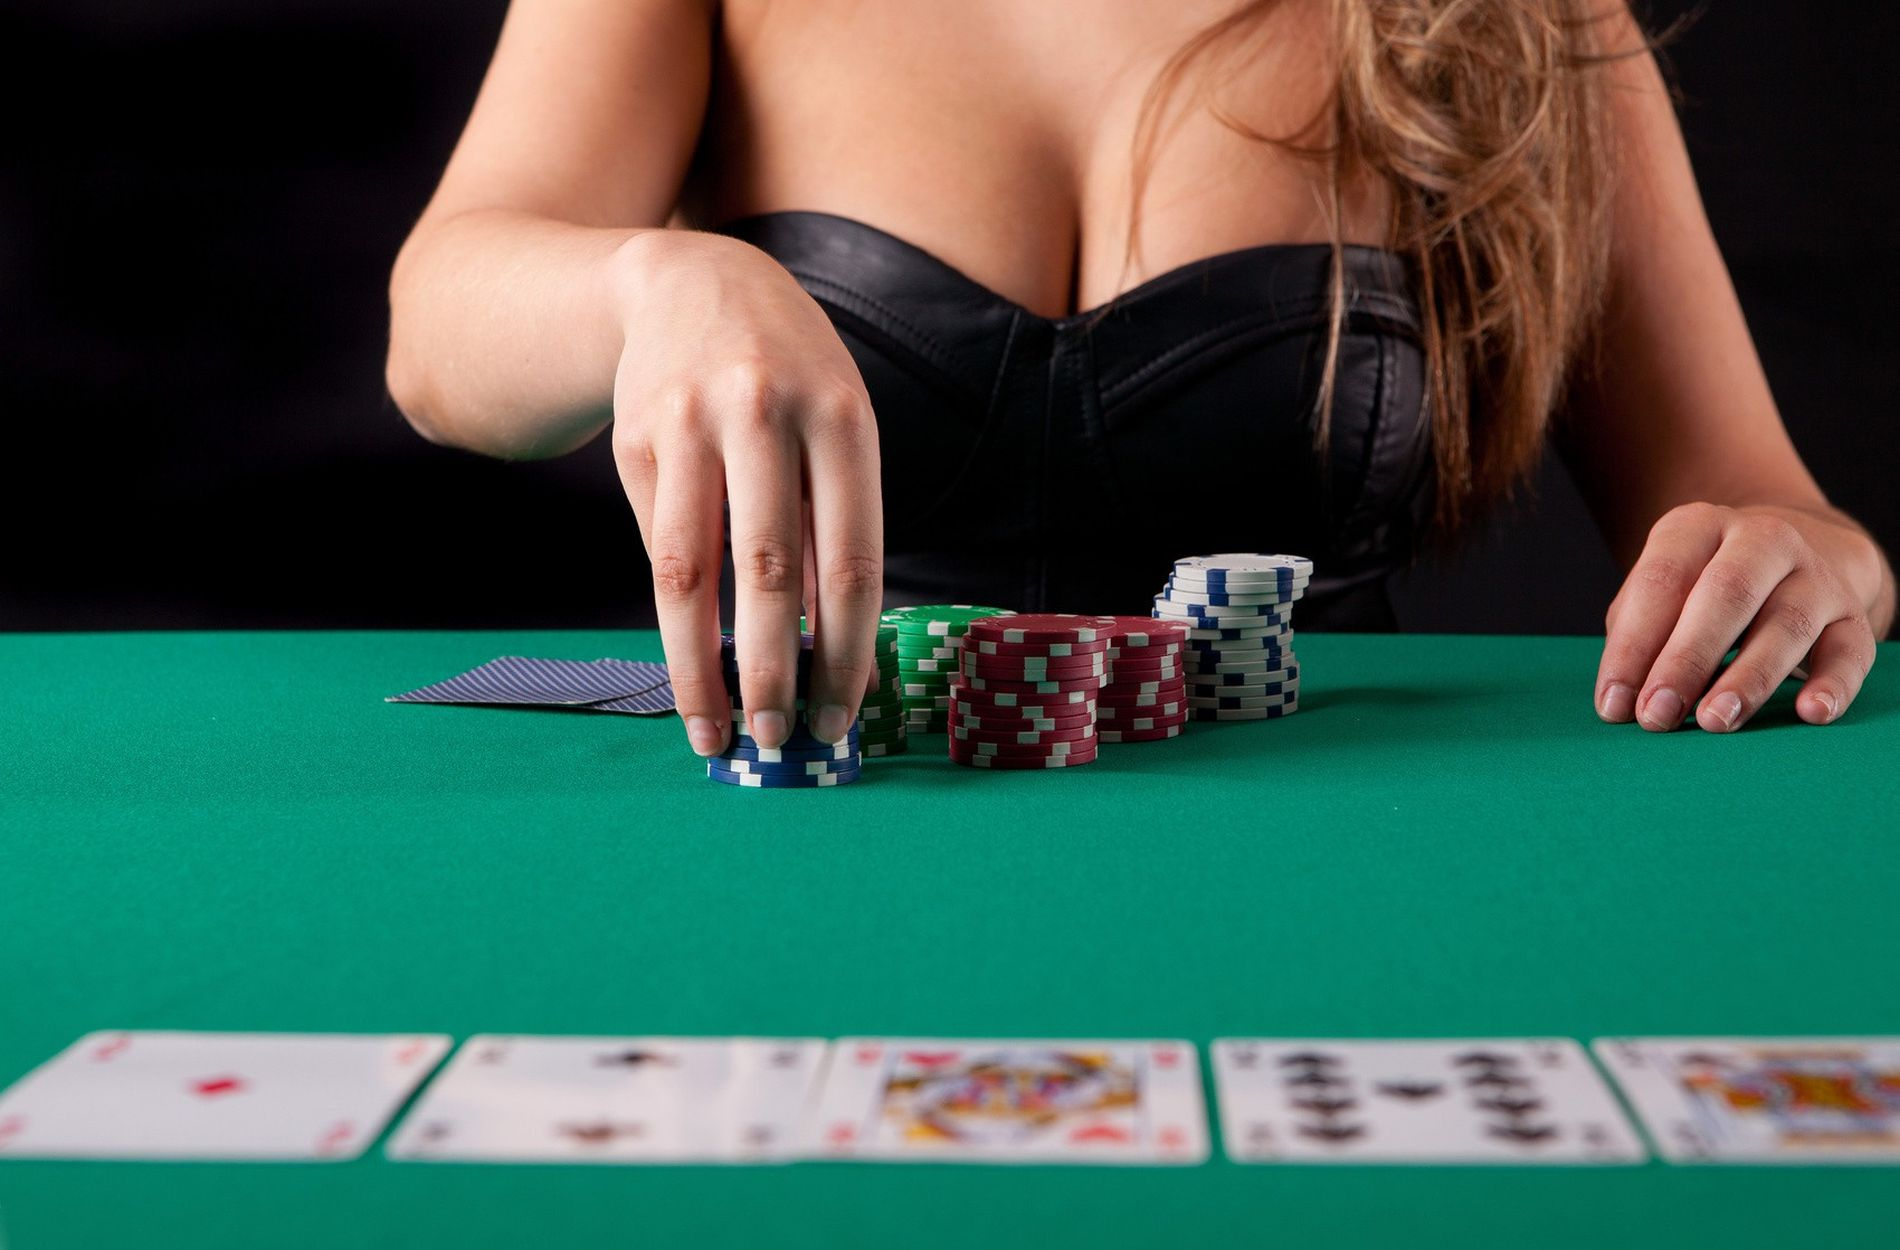 What Do Your Clients Assume About Your Online Gambling?